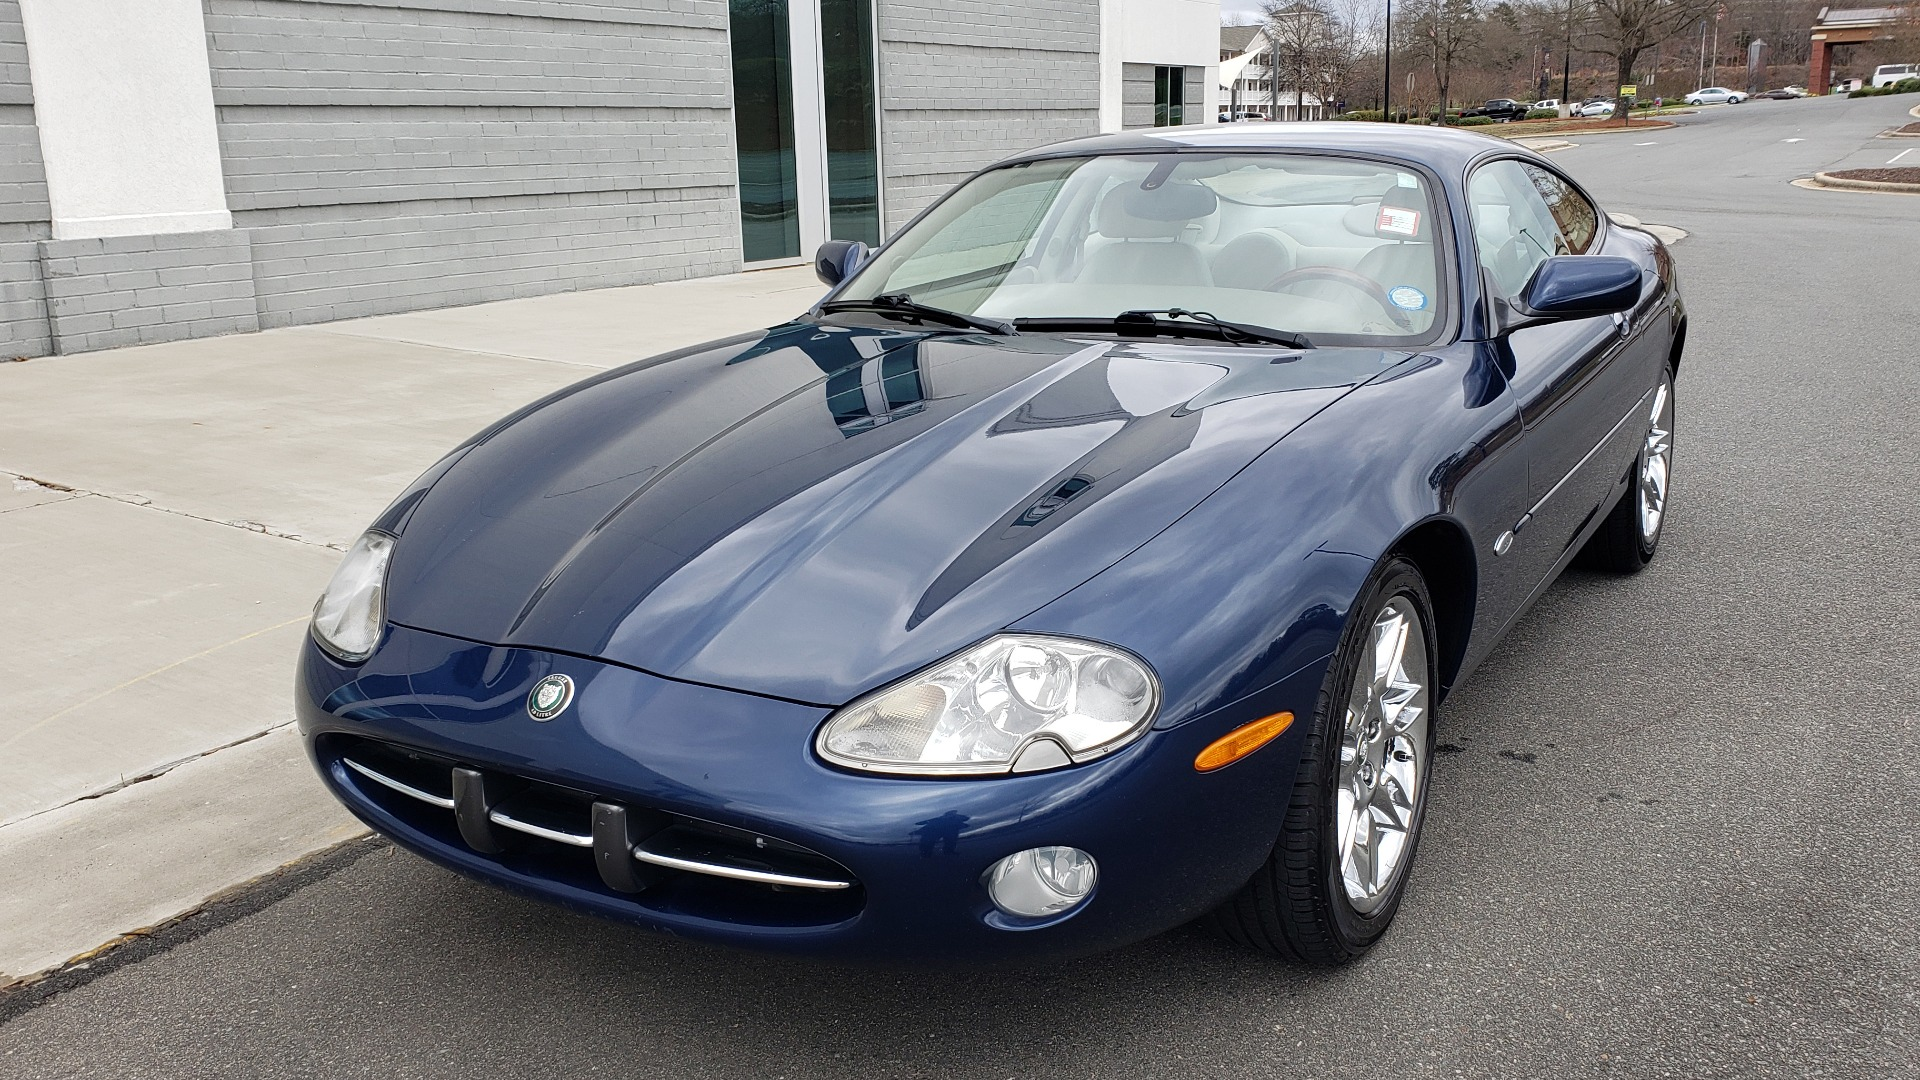 Used 2002 Jaguar XK8 COUPE / 4.0L V8 / 5-SPD AUTO / ALPINE SOUND / 18IN CHROME WHEELS for sale $16,450 at Formula Imports in Charlotte NC 28227 3